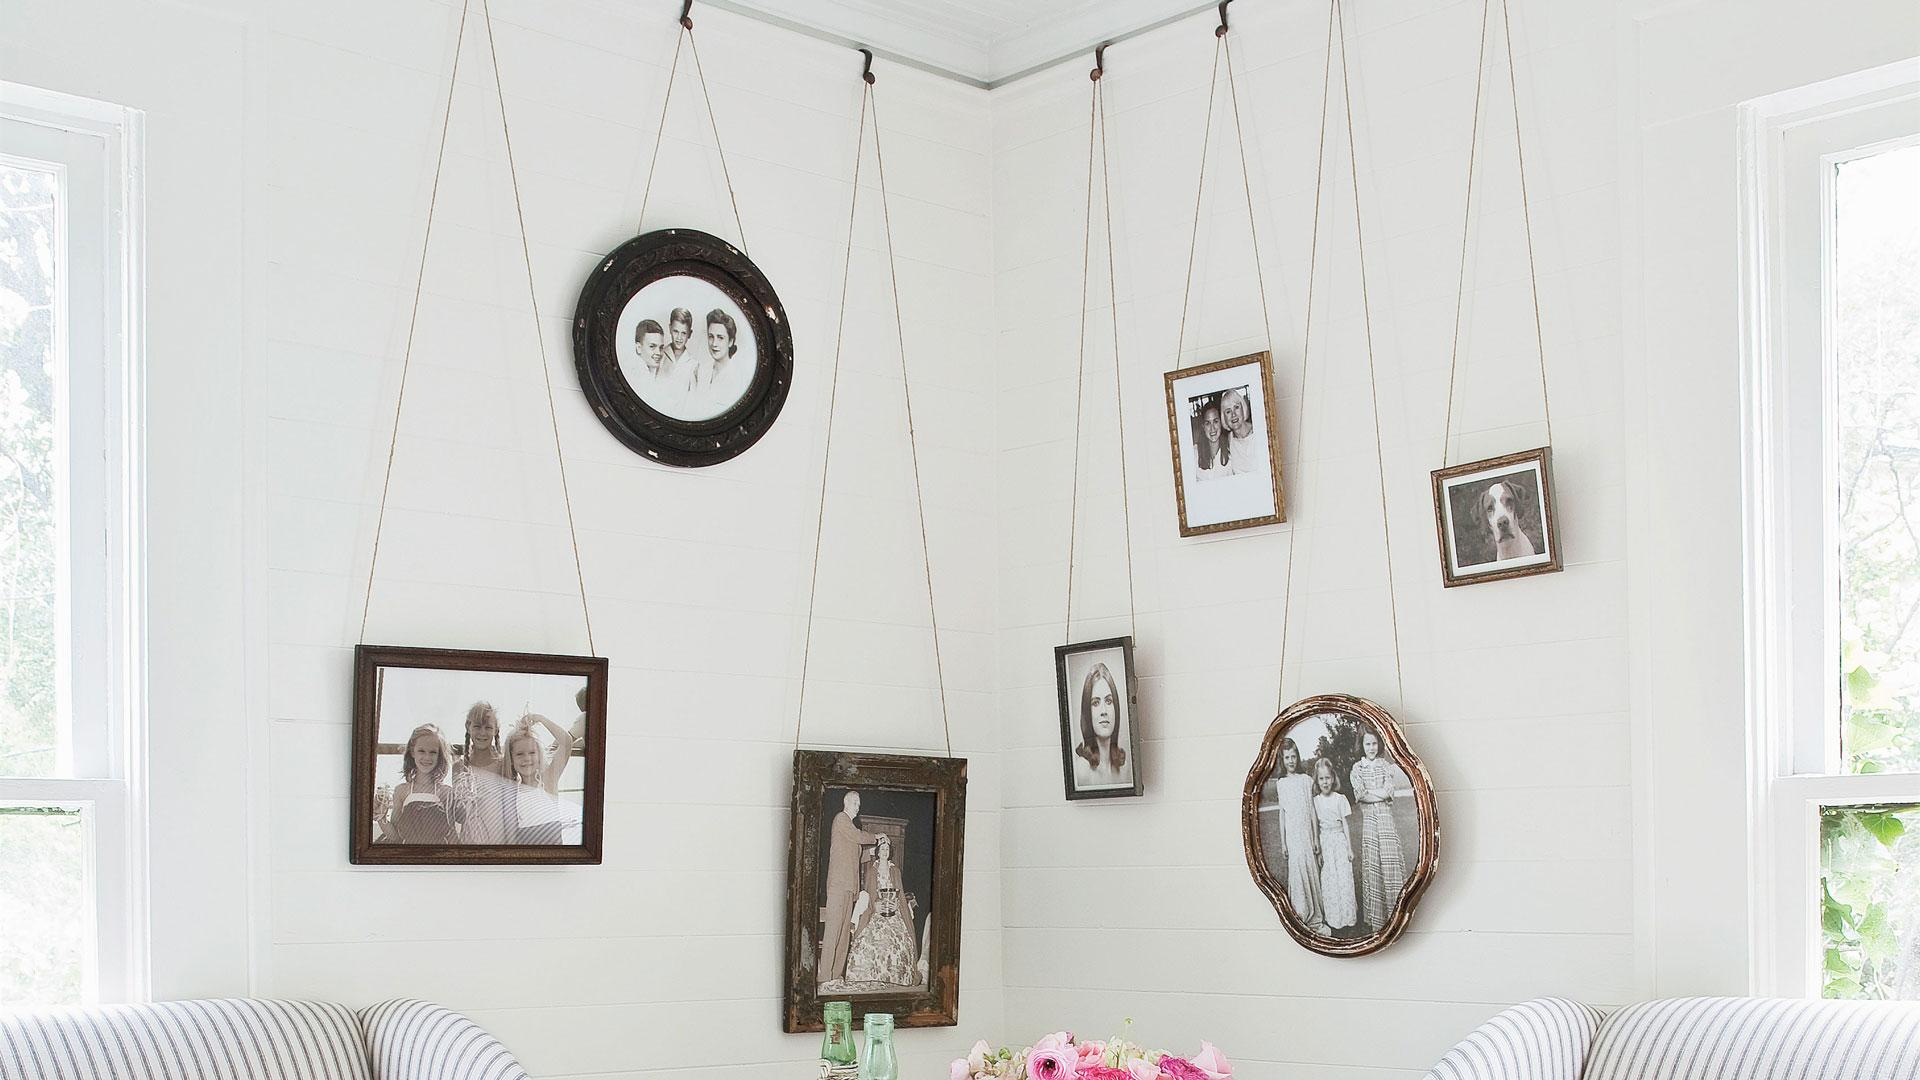 Done in a Day: Hanging Photo Display